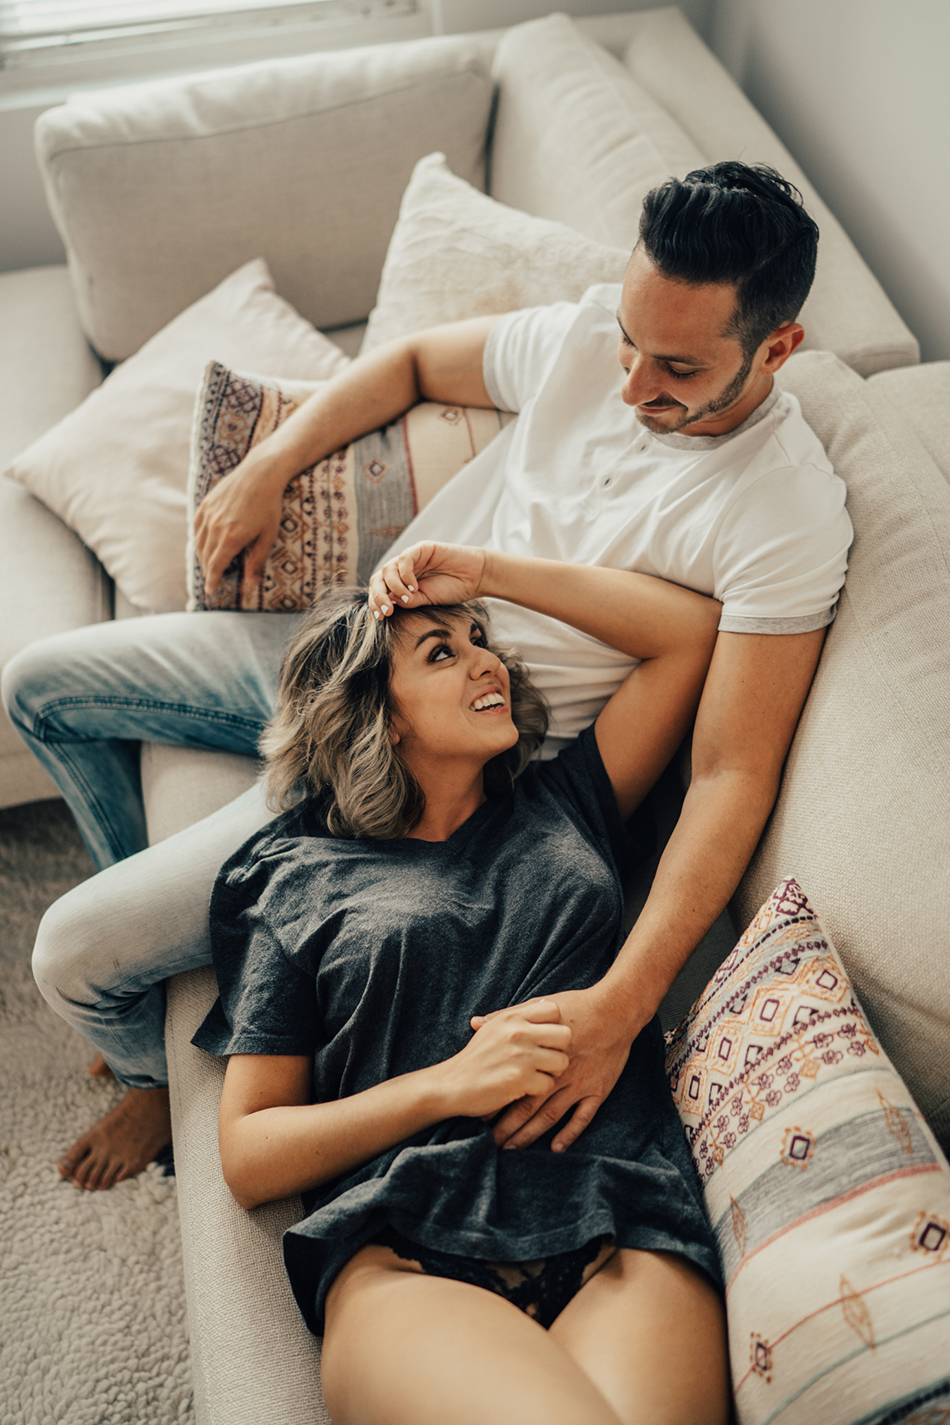 Intimate lovers embrace stock photo. Image of foreplay